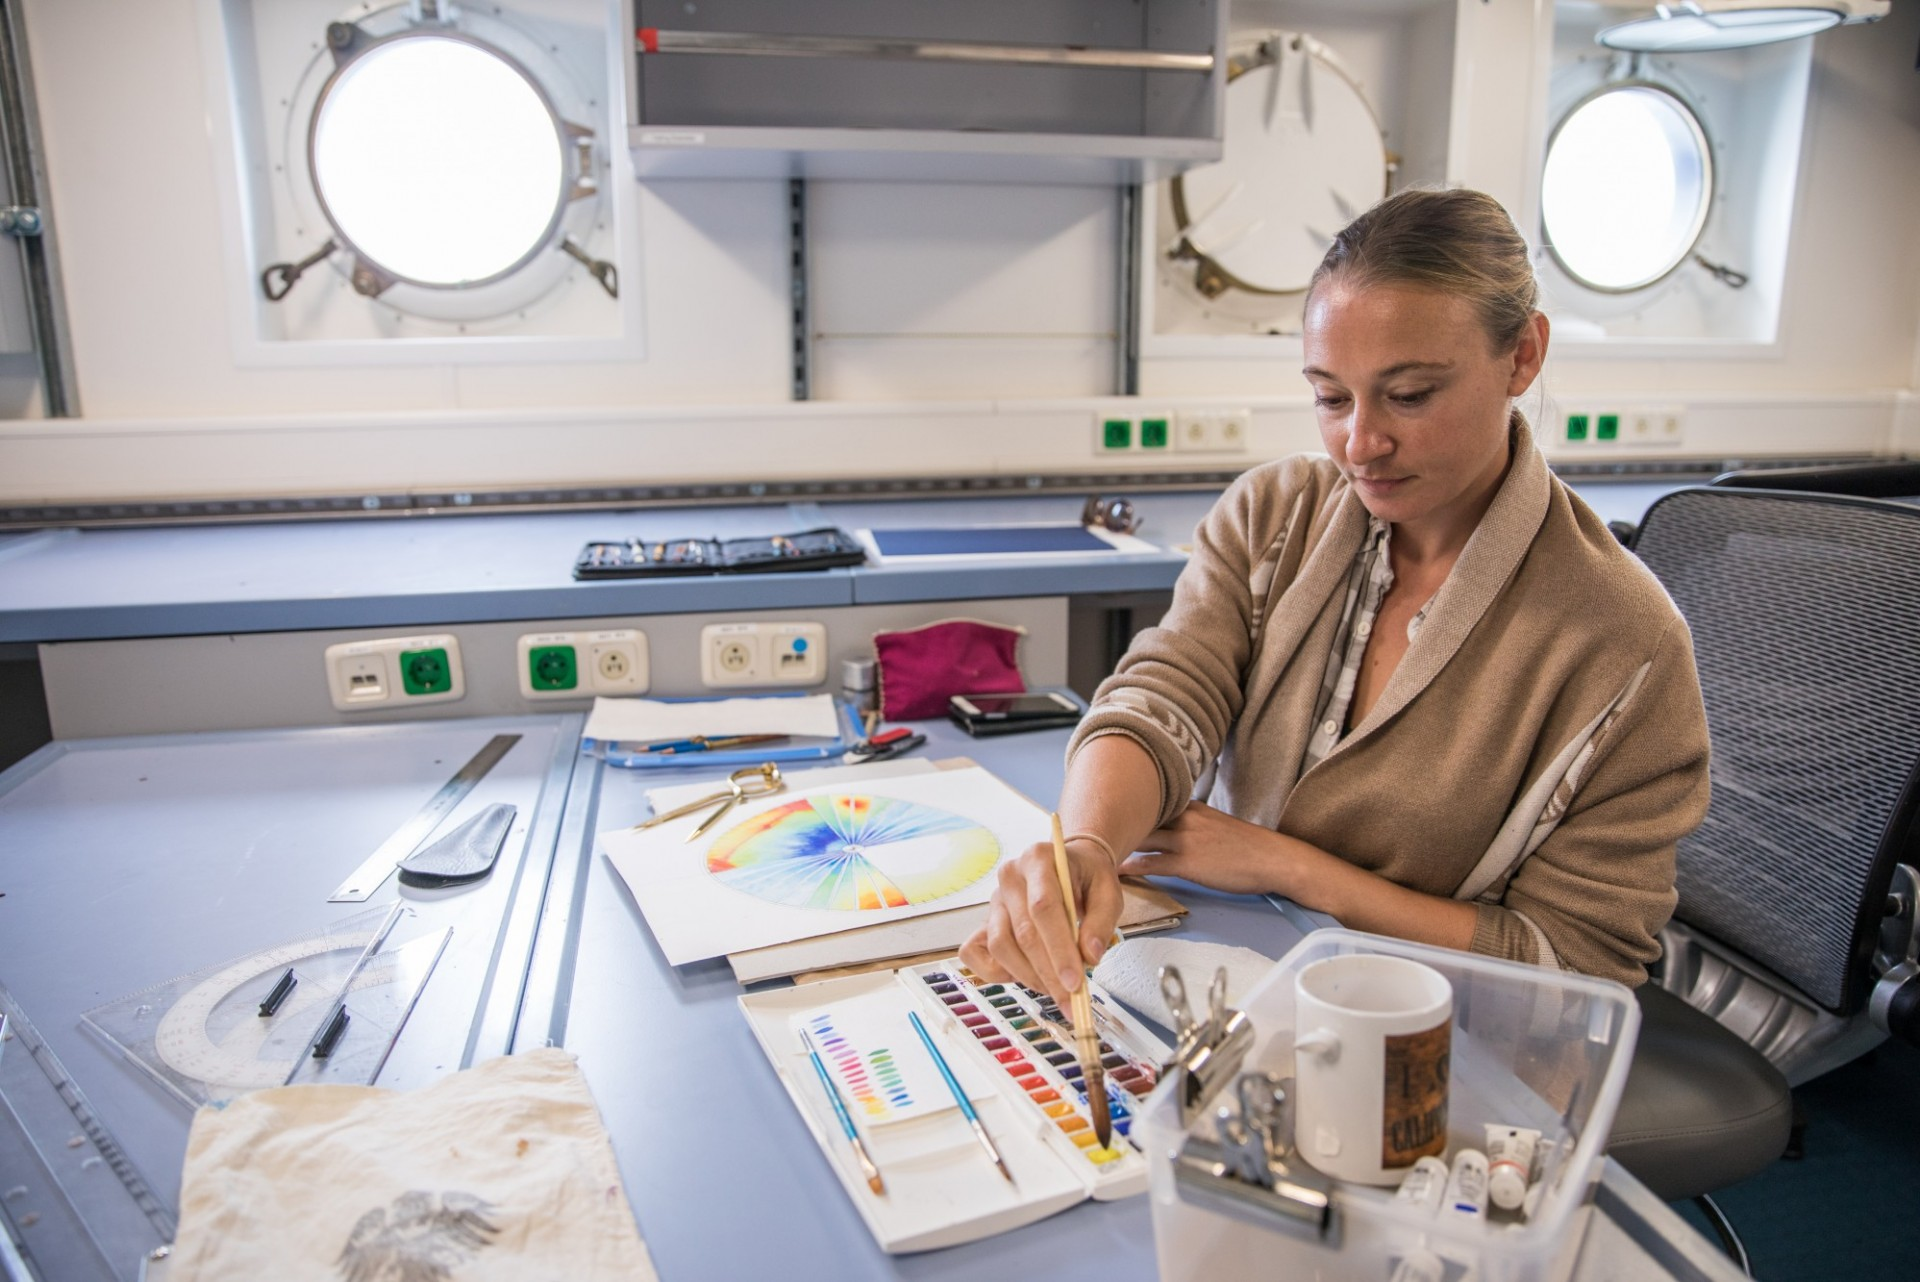 Lauren working in the R/V Falkor's dry lab, creating watercolour interpretations of the multibeam sonar acquisition display screens that show the seafloor mapping in real time.